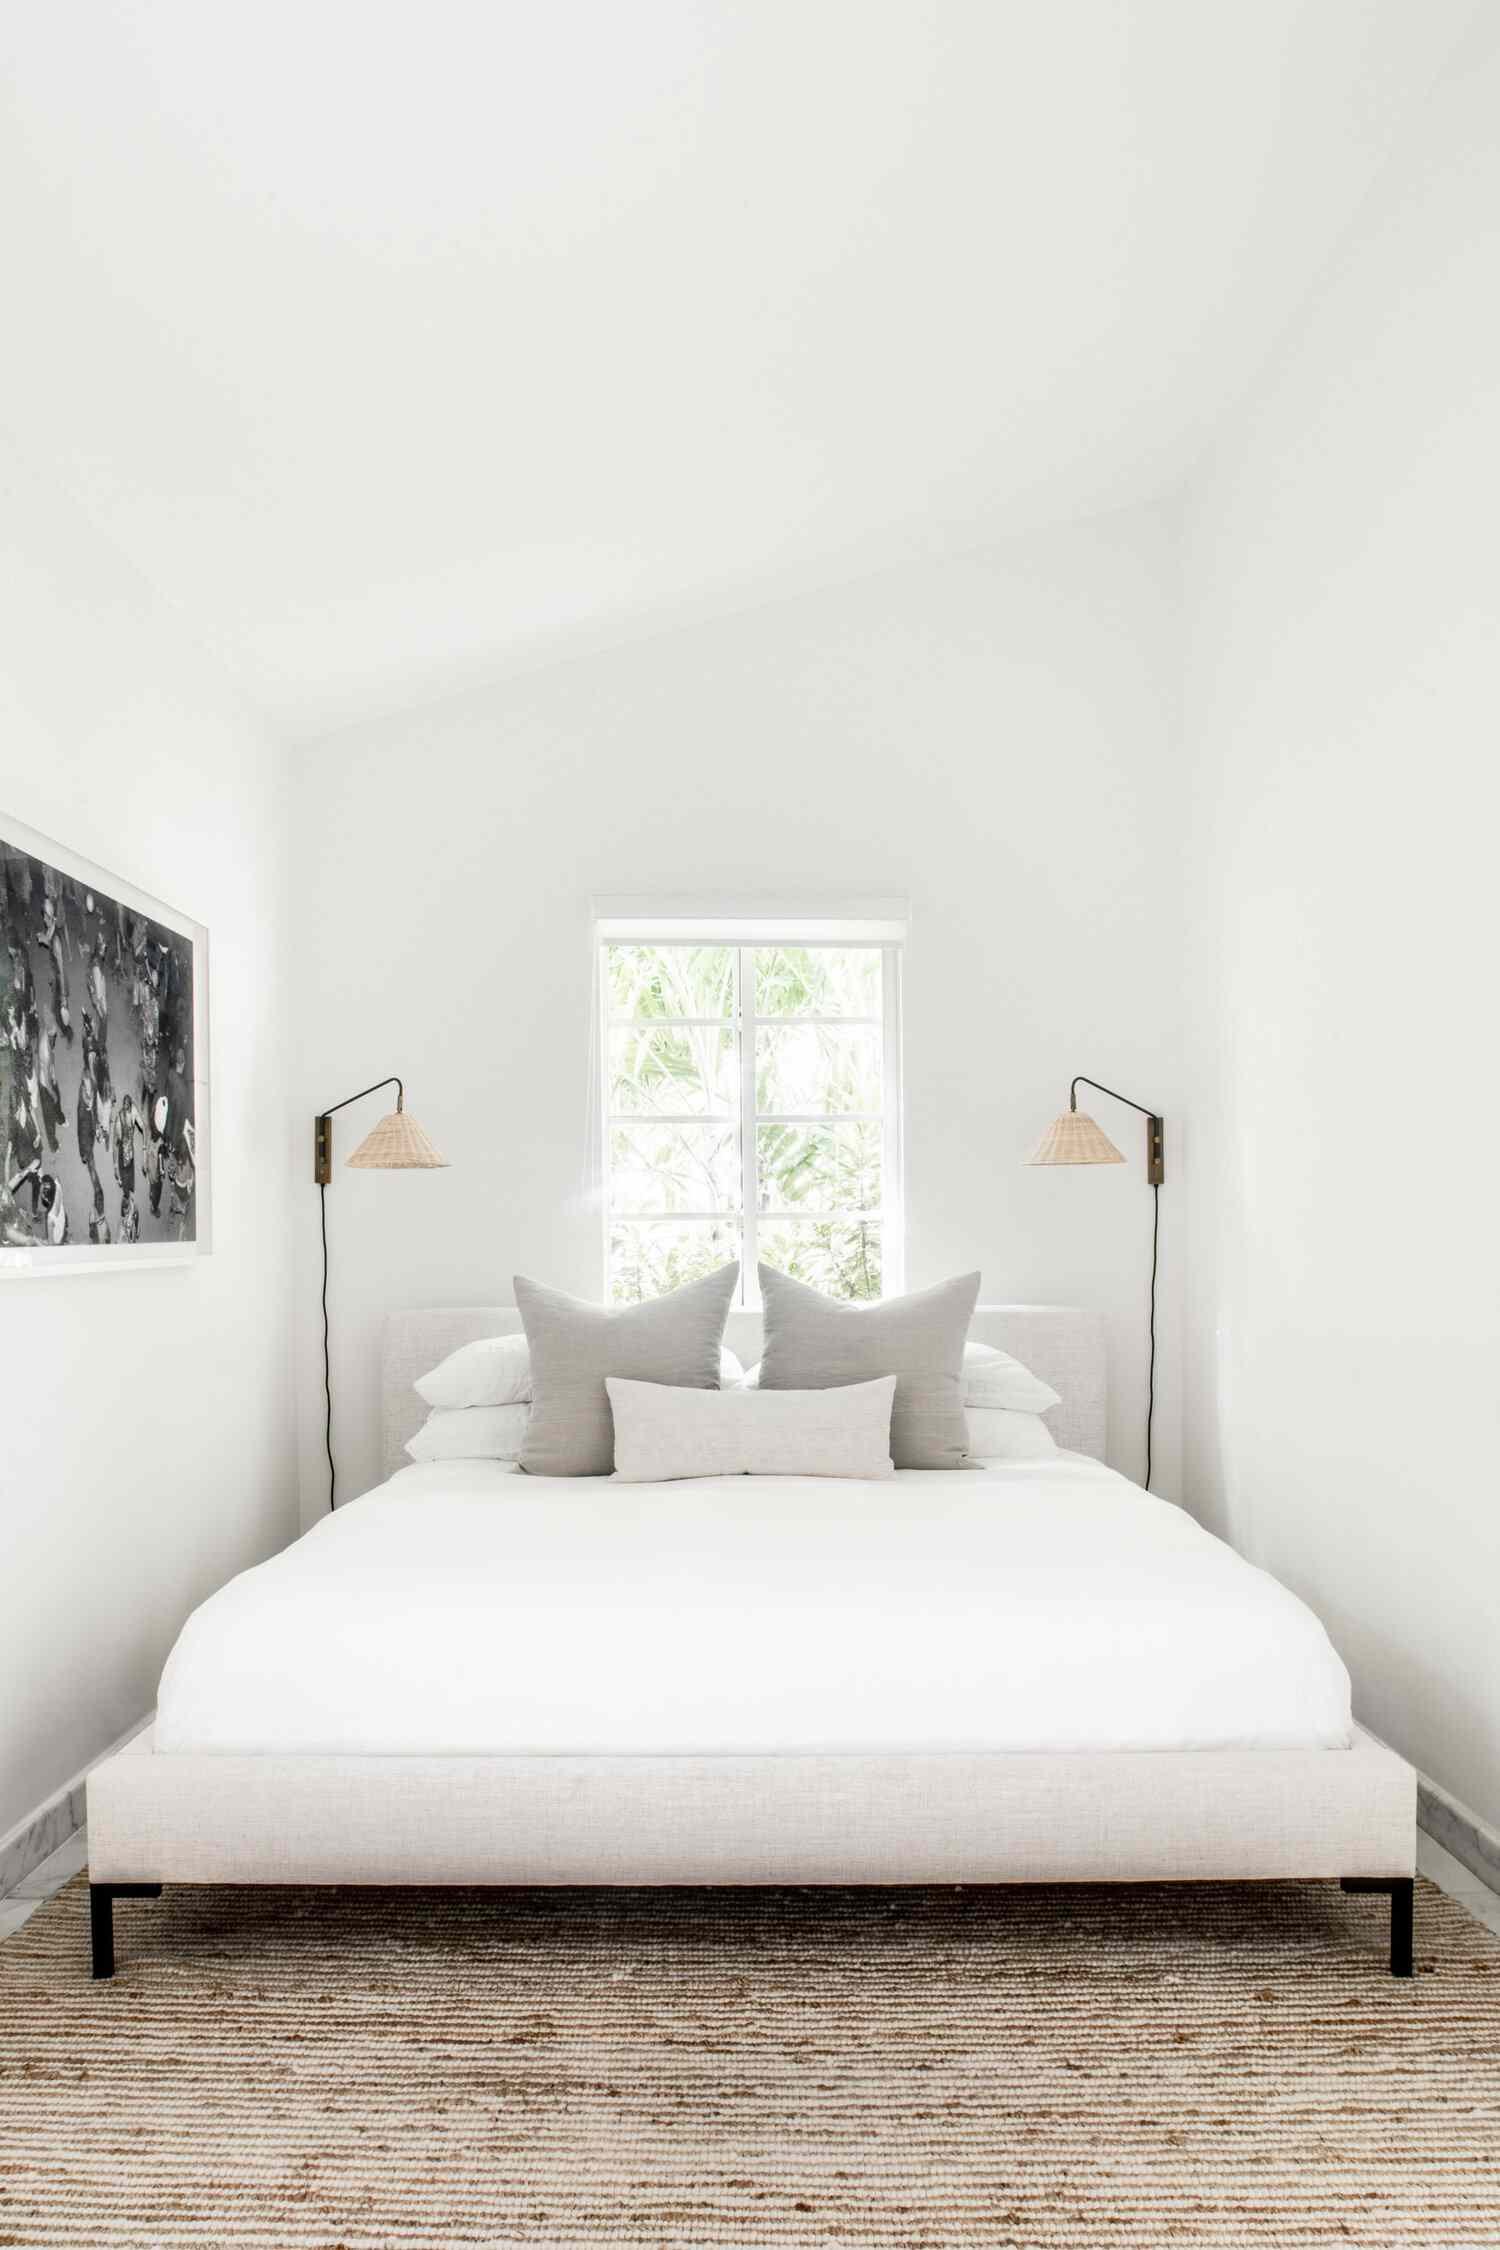 Bedroom with sconces on the wall